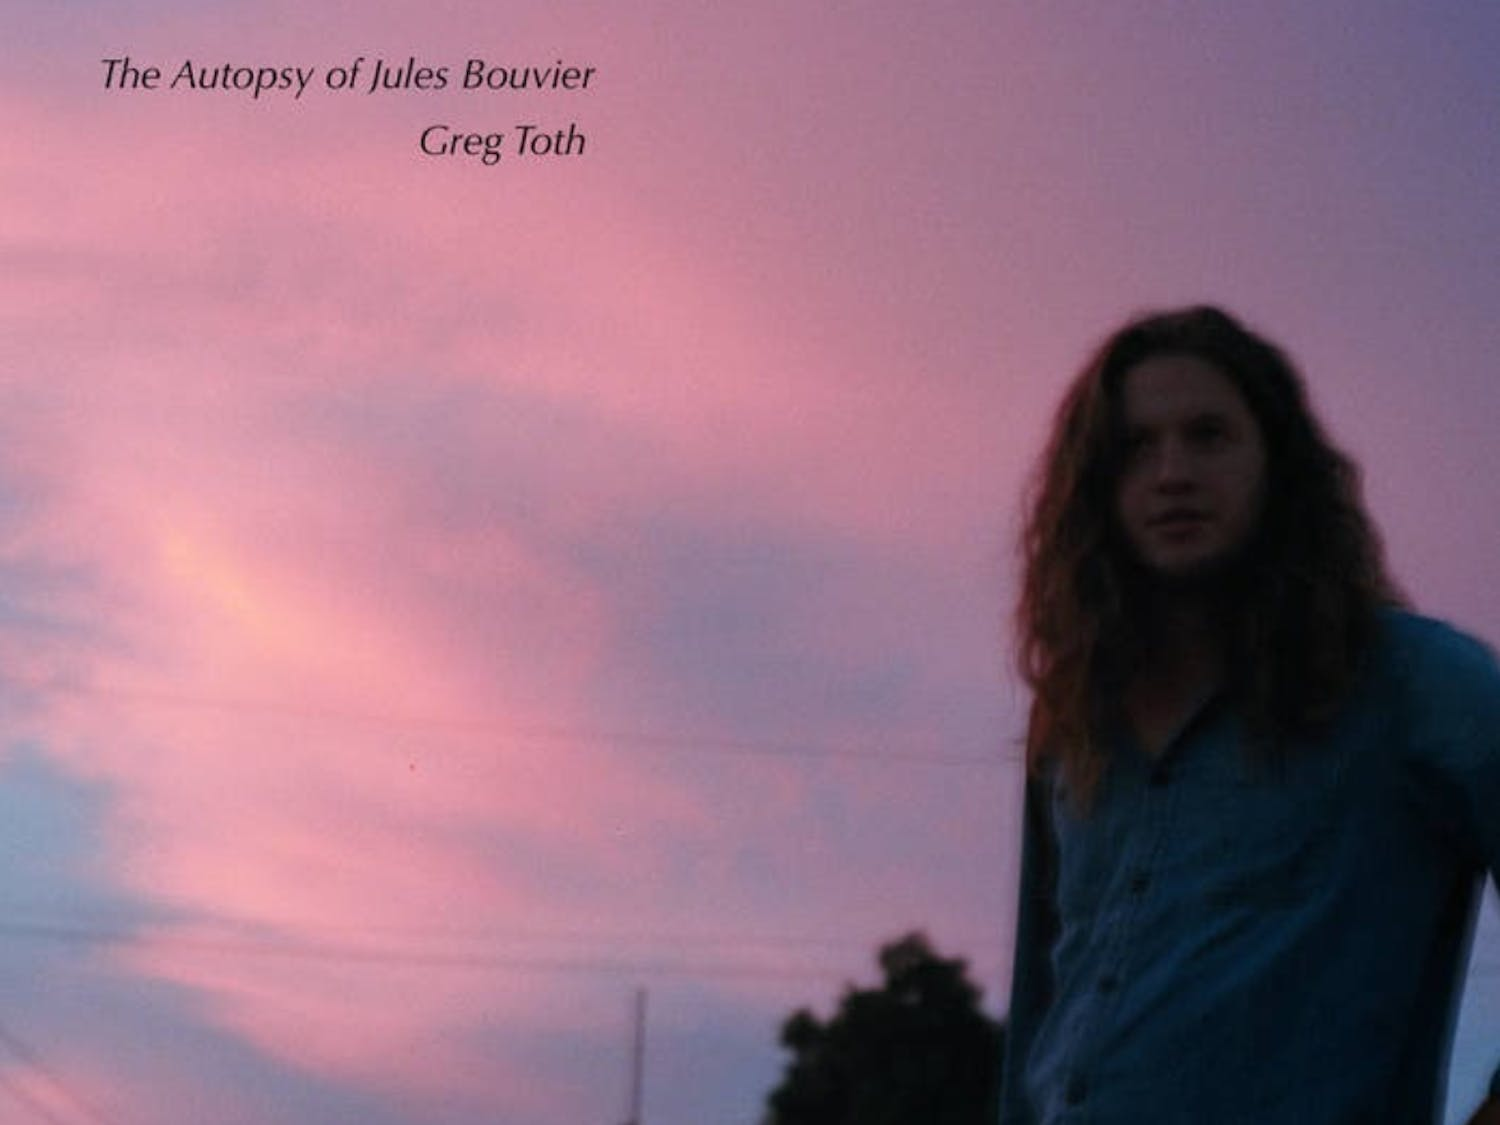 """Toth's latest album, """"The Autopsy of Jules Bouvier,"""" was released Aug. 18 and reflects a guitar blues influence."""